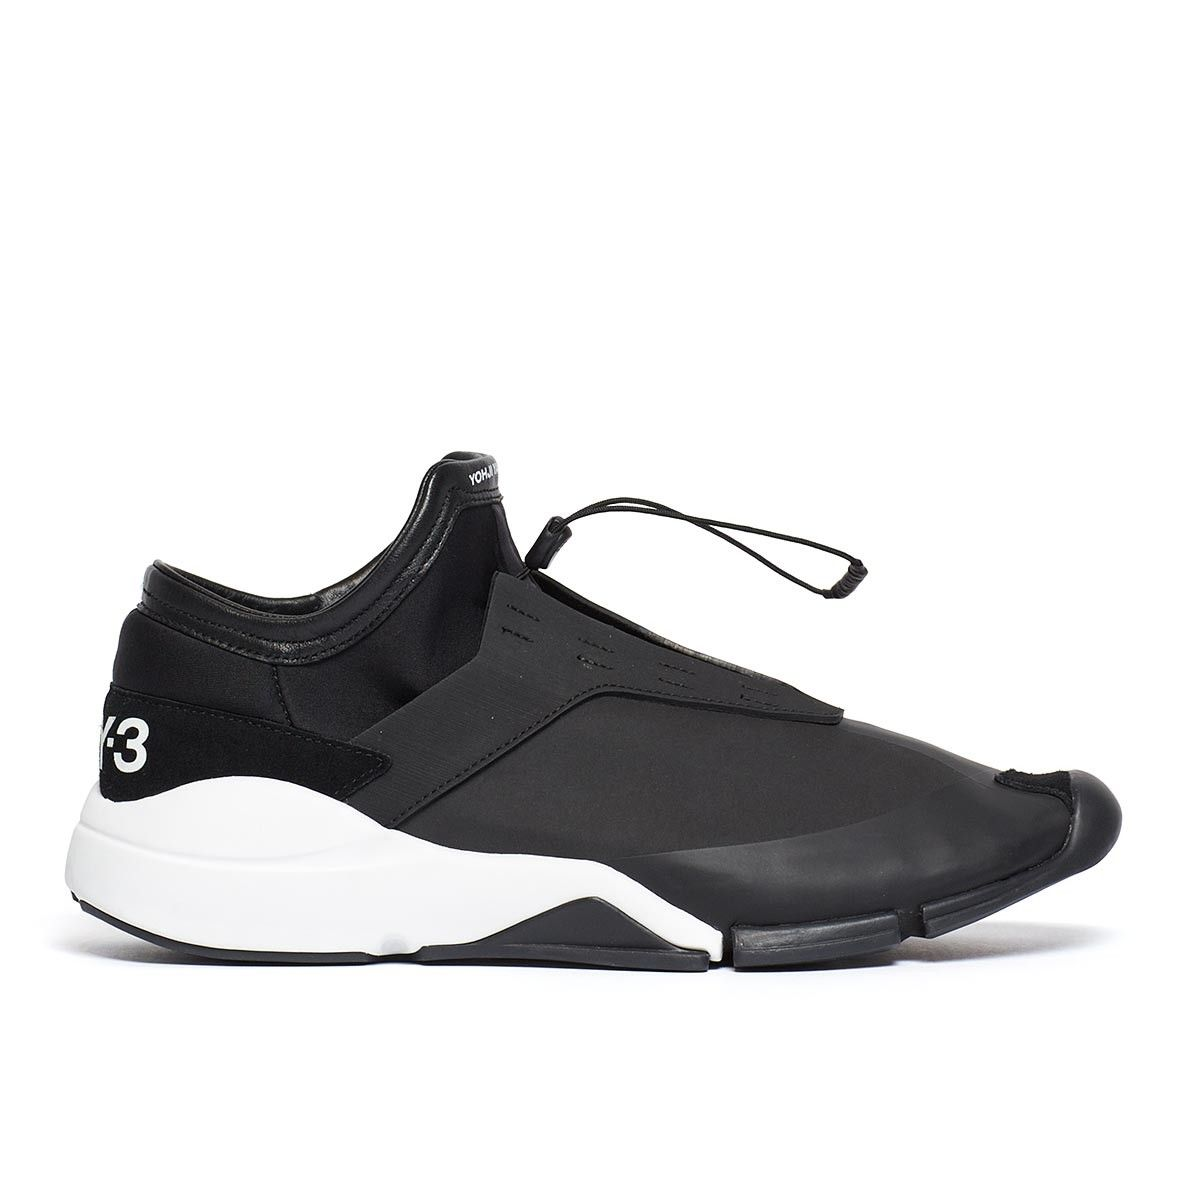 new arrival bdc68 02894 Future low sneakers from the F W2016-17 Y-3 by Yohji Yamamoto collection in  black